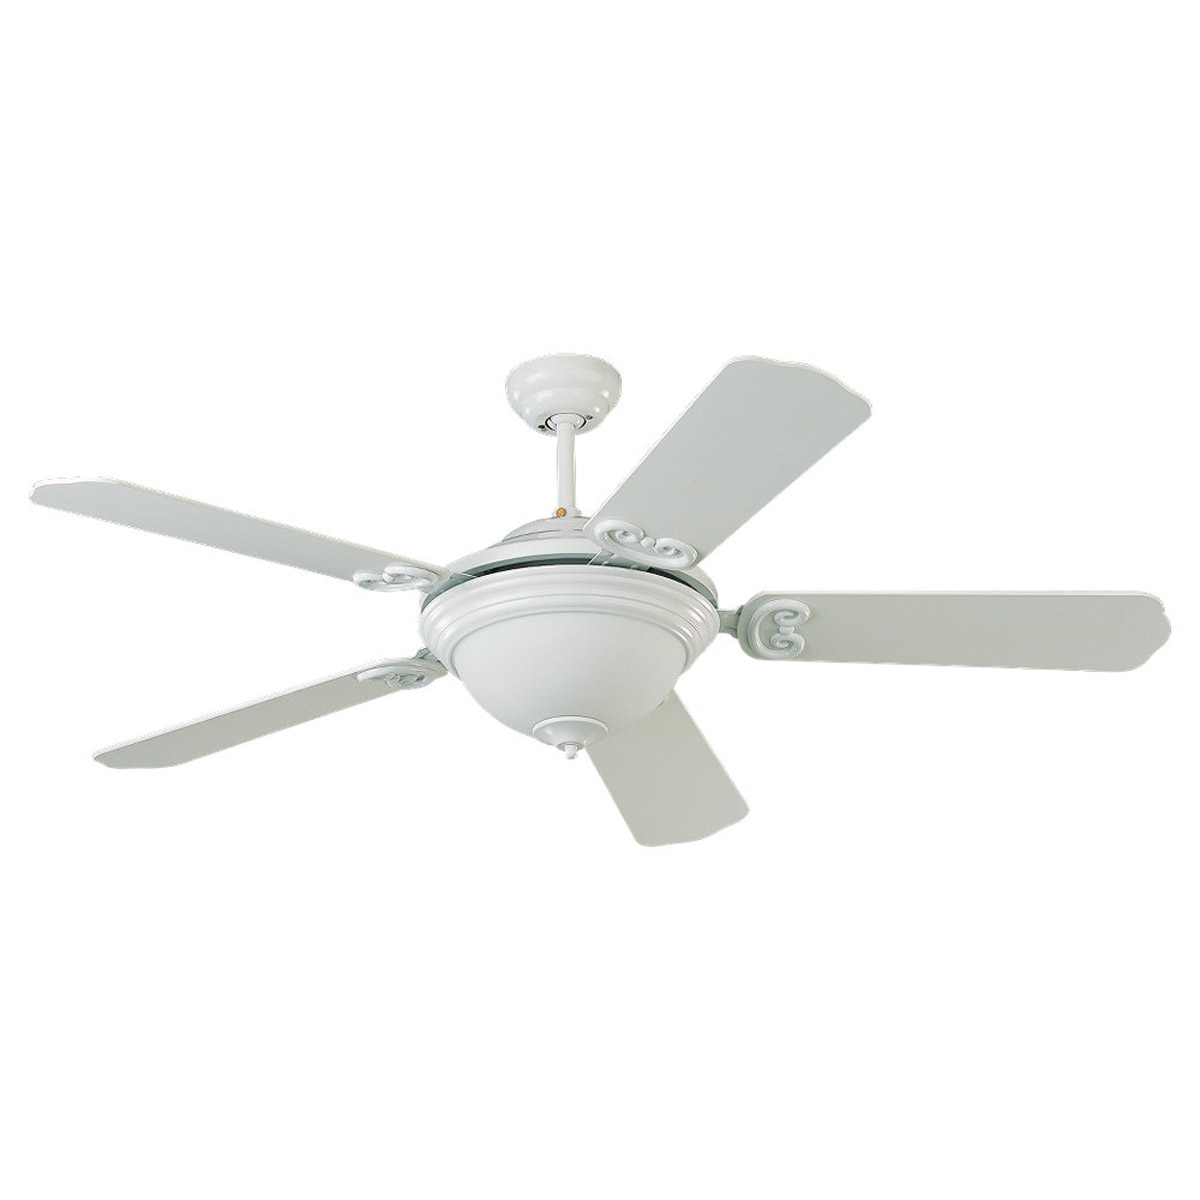 Sea Gull Lighting Park Avenue Elite 1 Light Fluorescent Ceiling Fan in White 15090BLE-15 photo